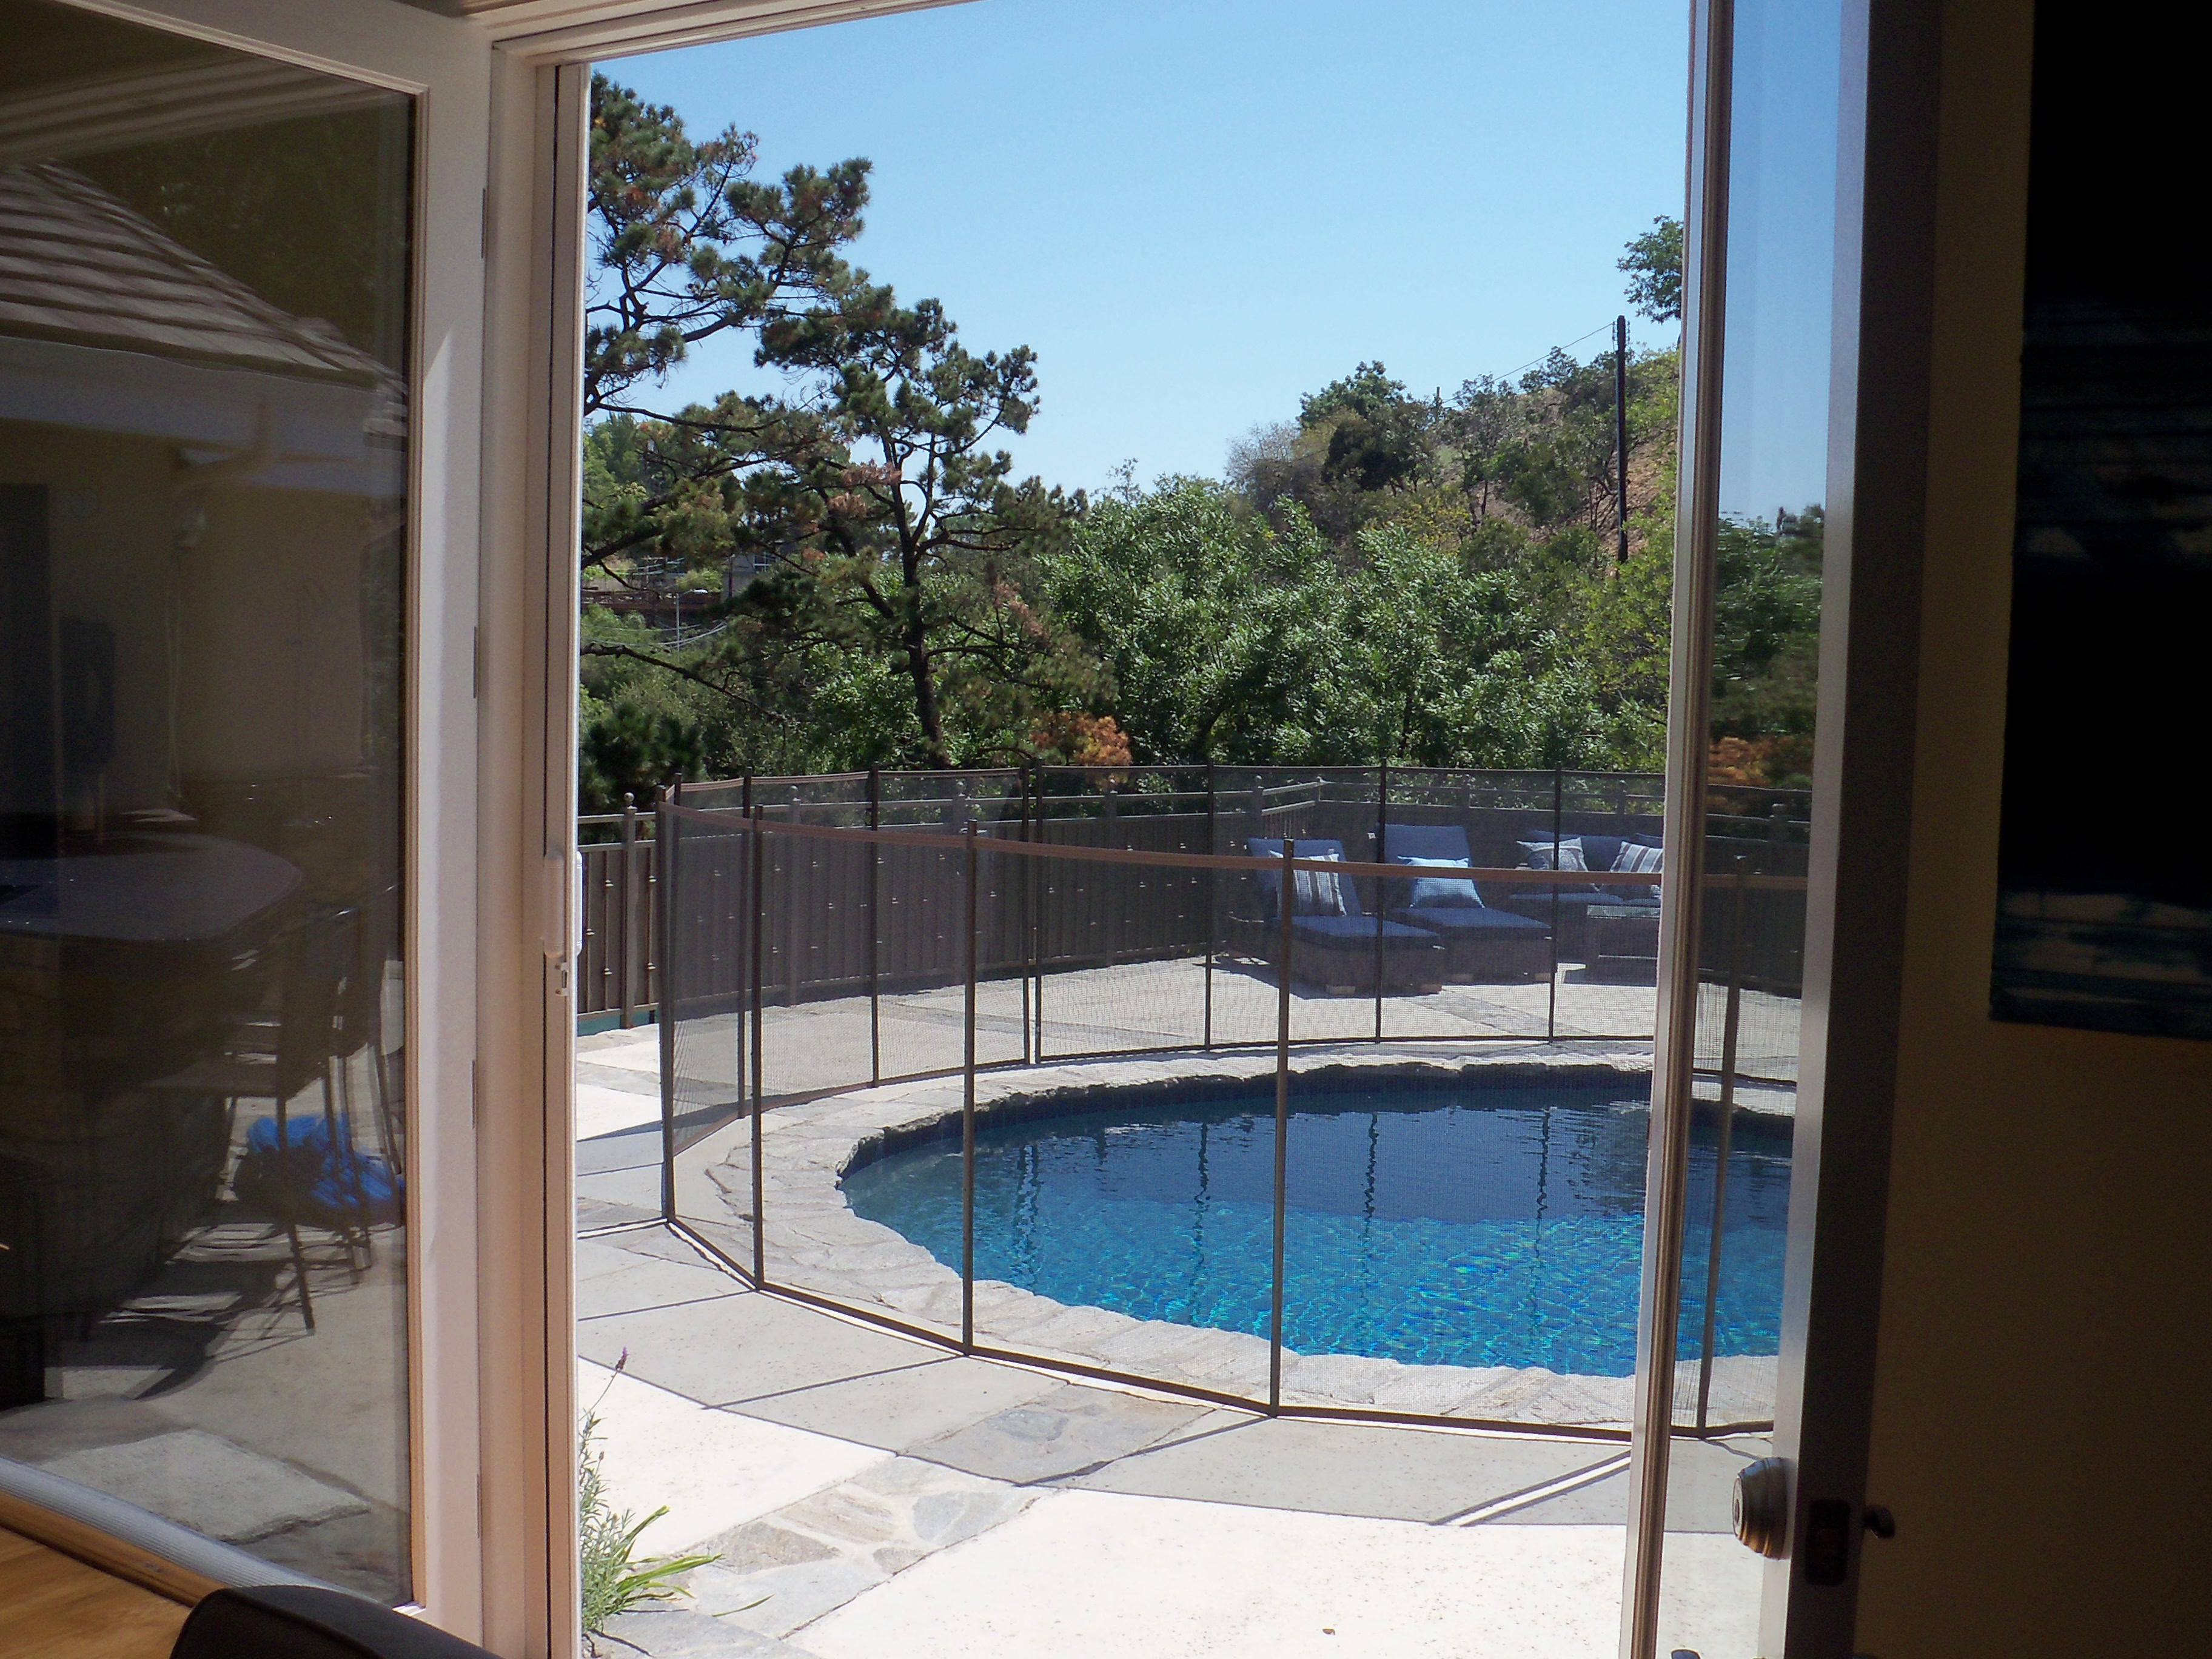 Calabasas Retractable Screens |